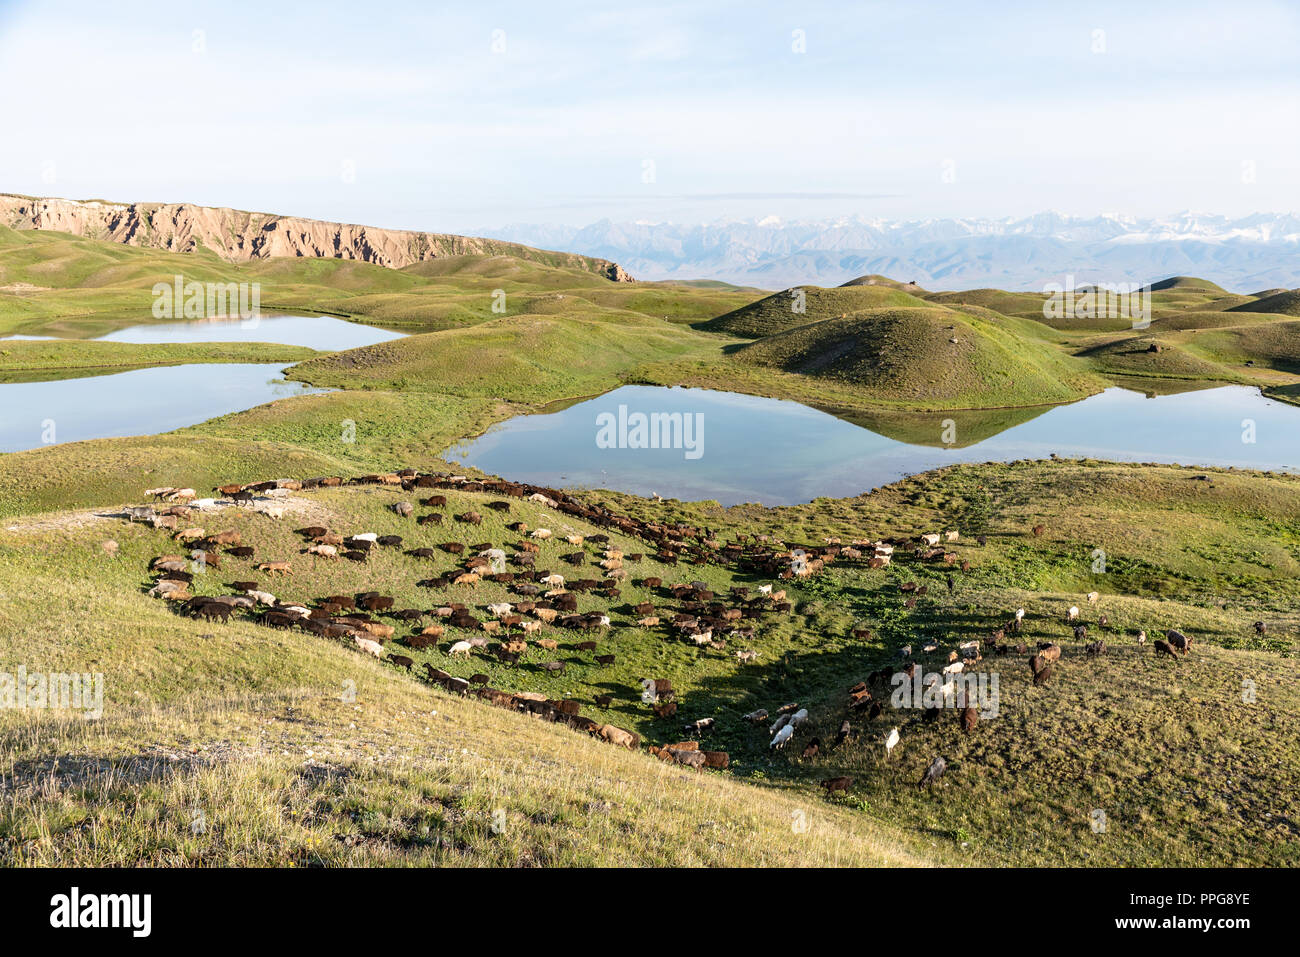 Peak Lenin valley with its characteristic mountain lakes,  Kyrgyzstan Stock Photo